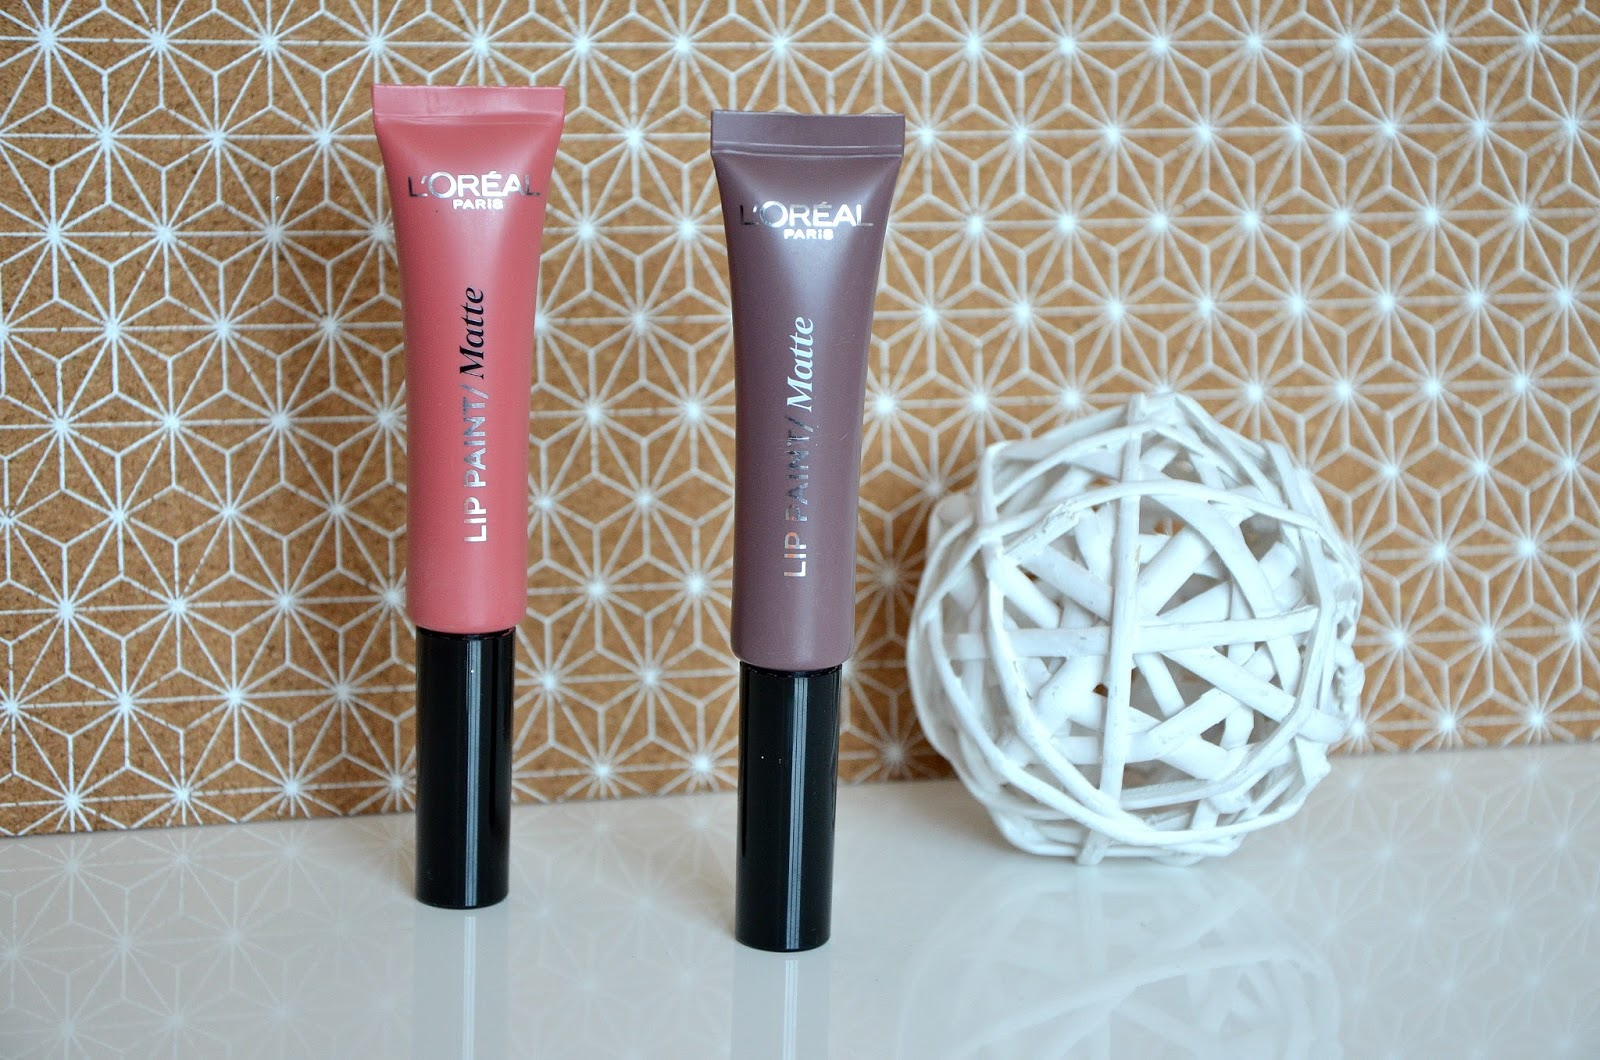 Rouges à lèvres infaillible lip paint matte L'Oréal Paris